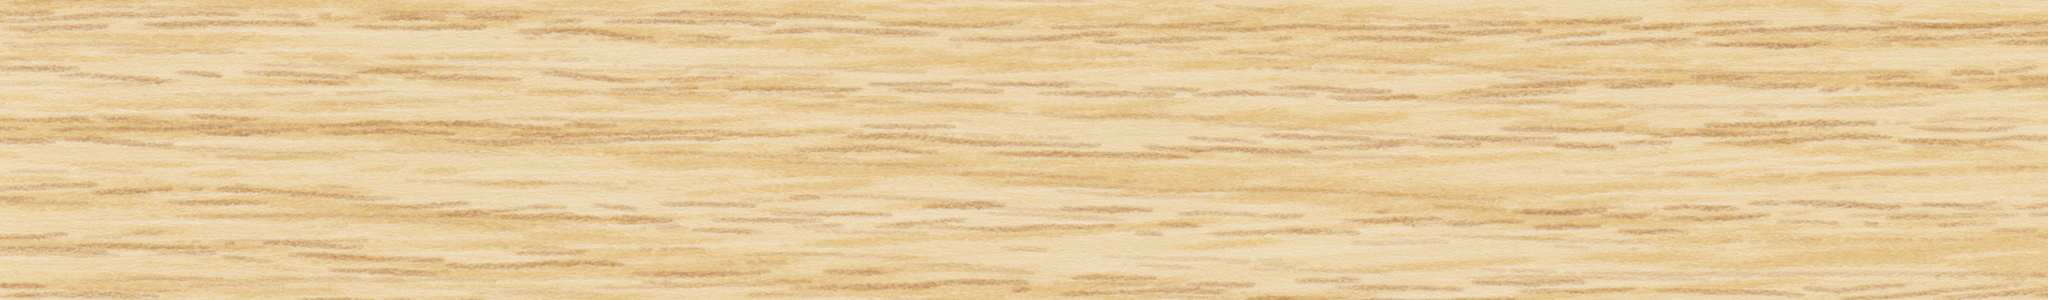 HD 64709 Melamine Edge FALZ Oak Smooth